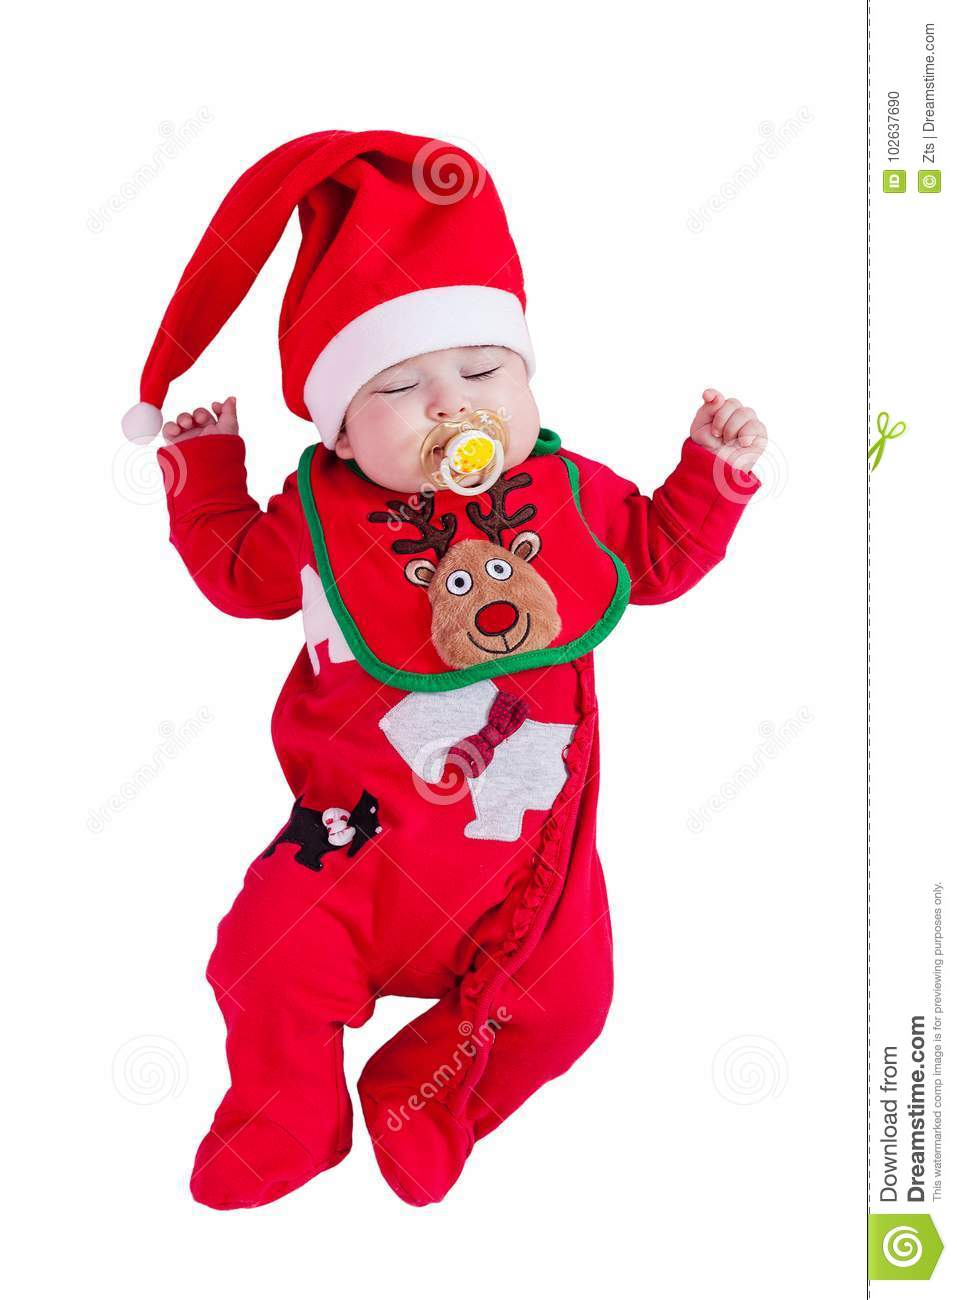 baby girl sleeping or asleep with pacifier or dummy red onesie